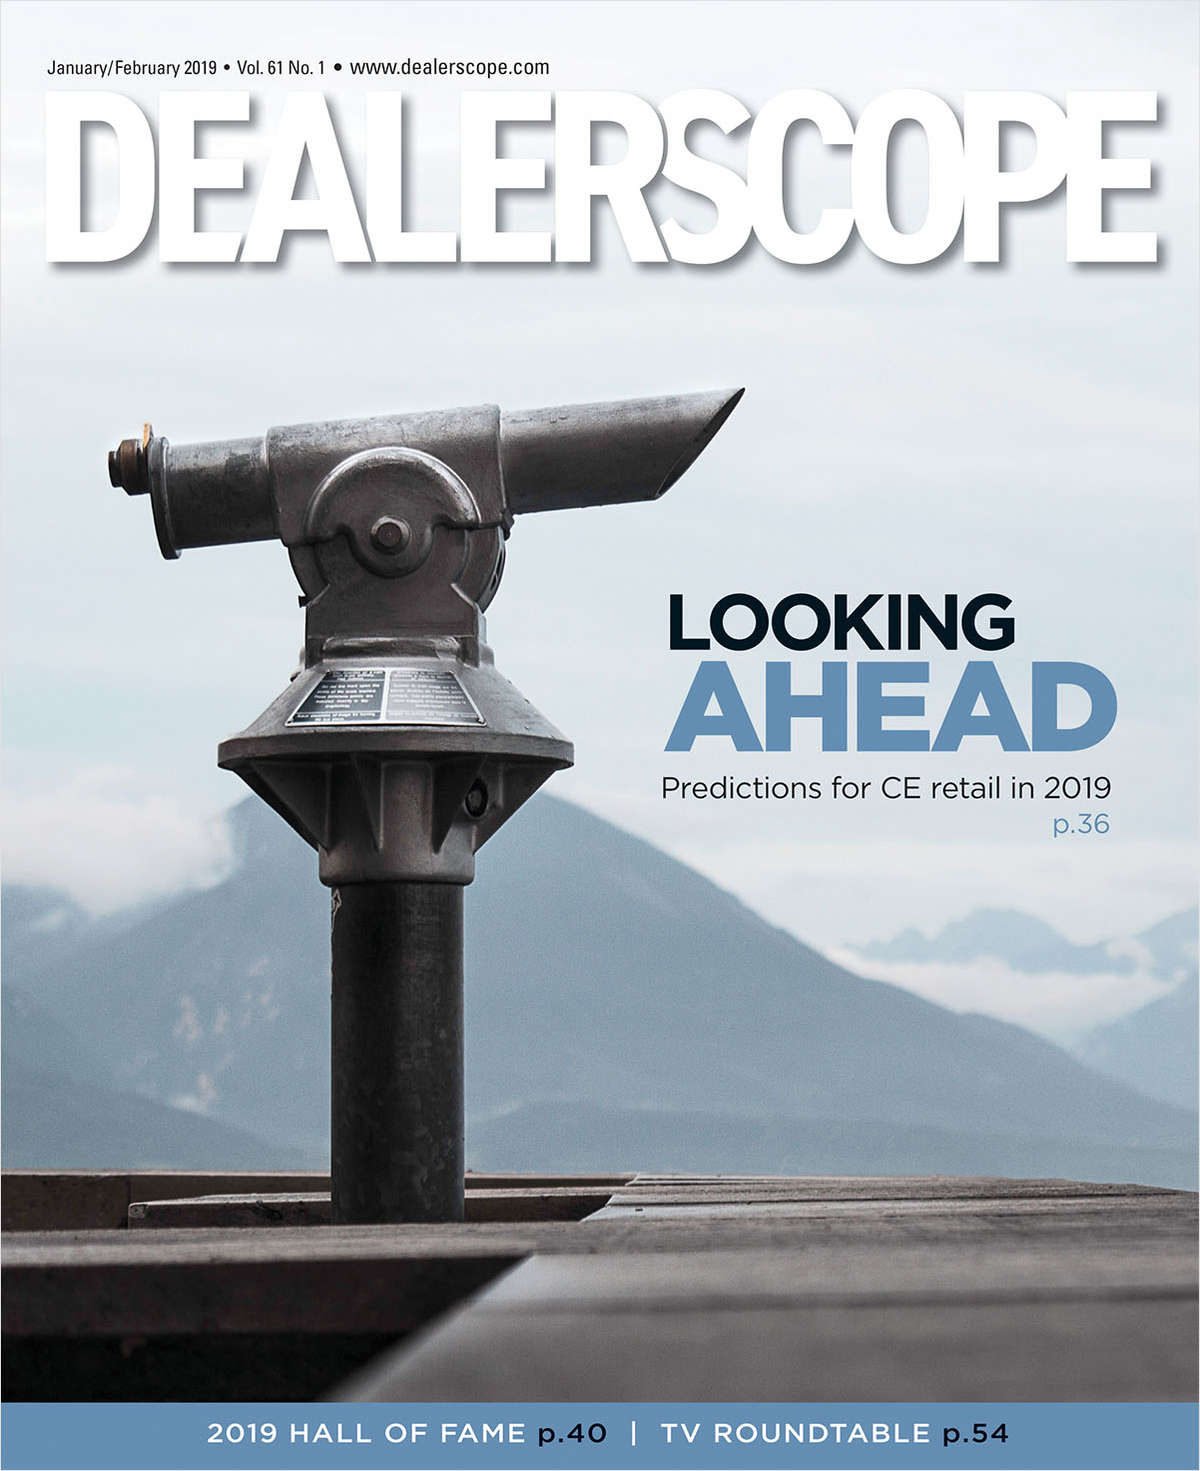 Dealerscope